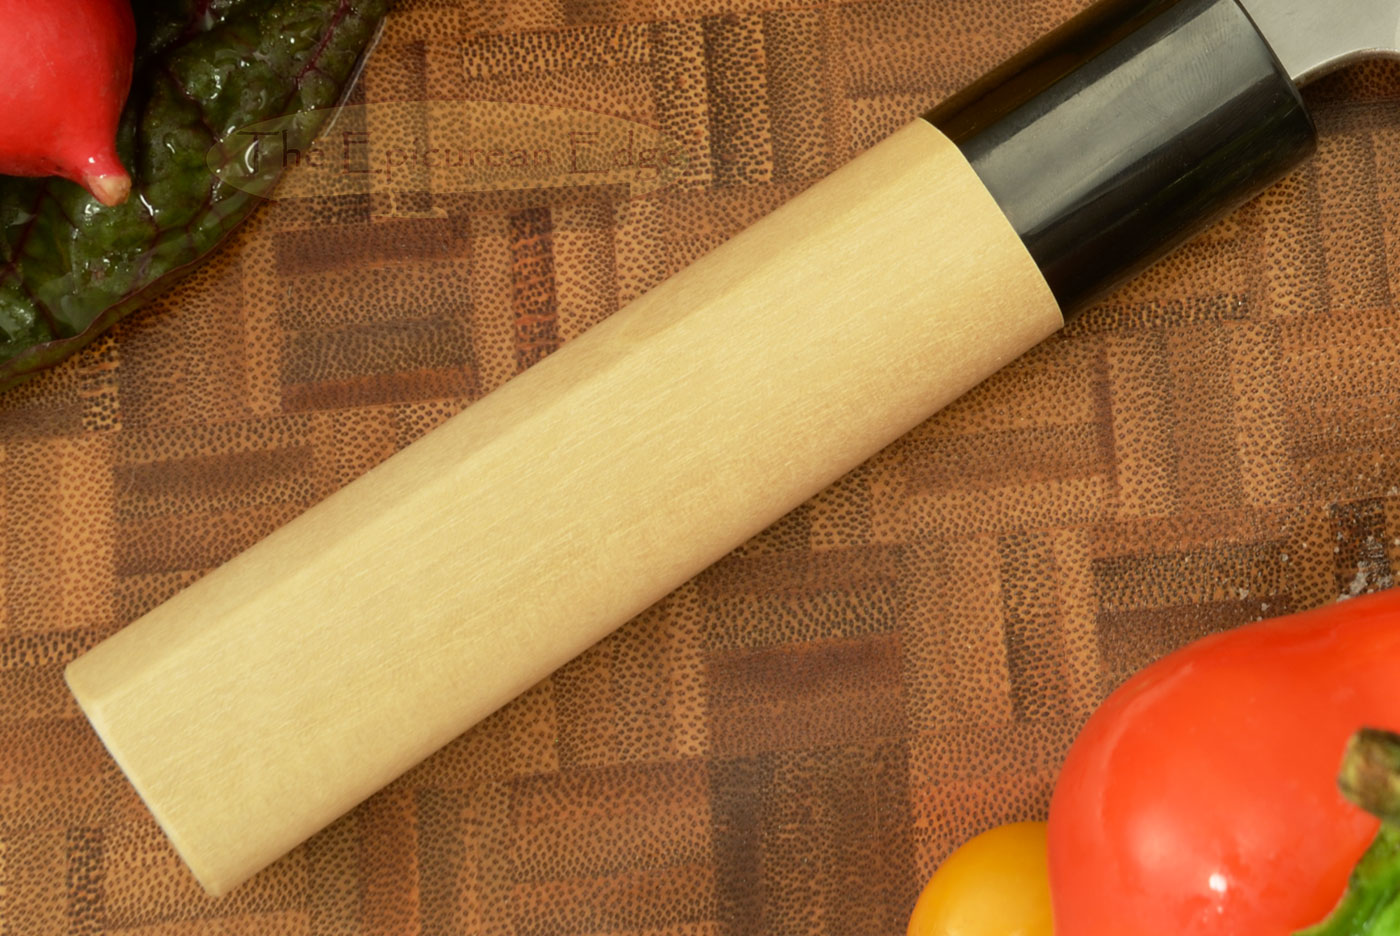 Hammer Finished Vegetable Knife - Nakiri, Traditional - 6 1/2 in. (165mm)